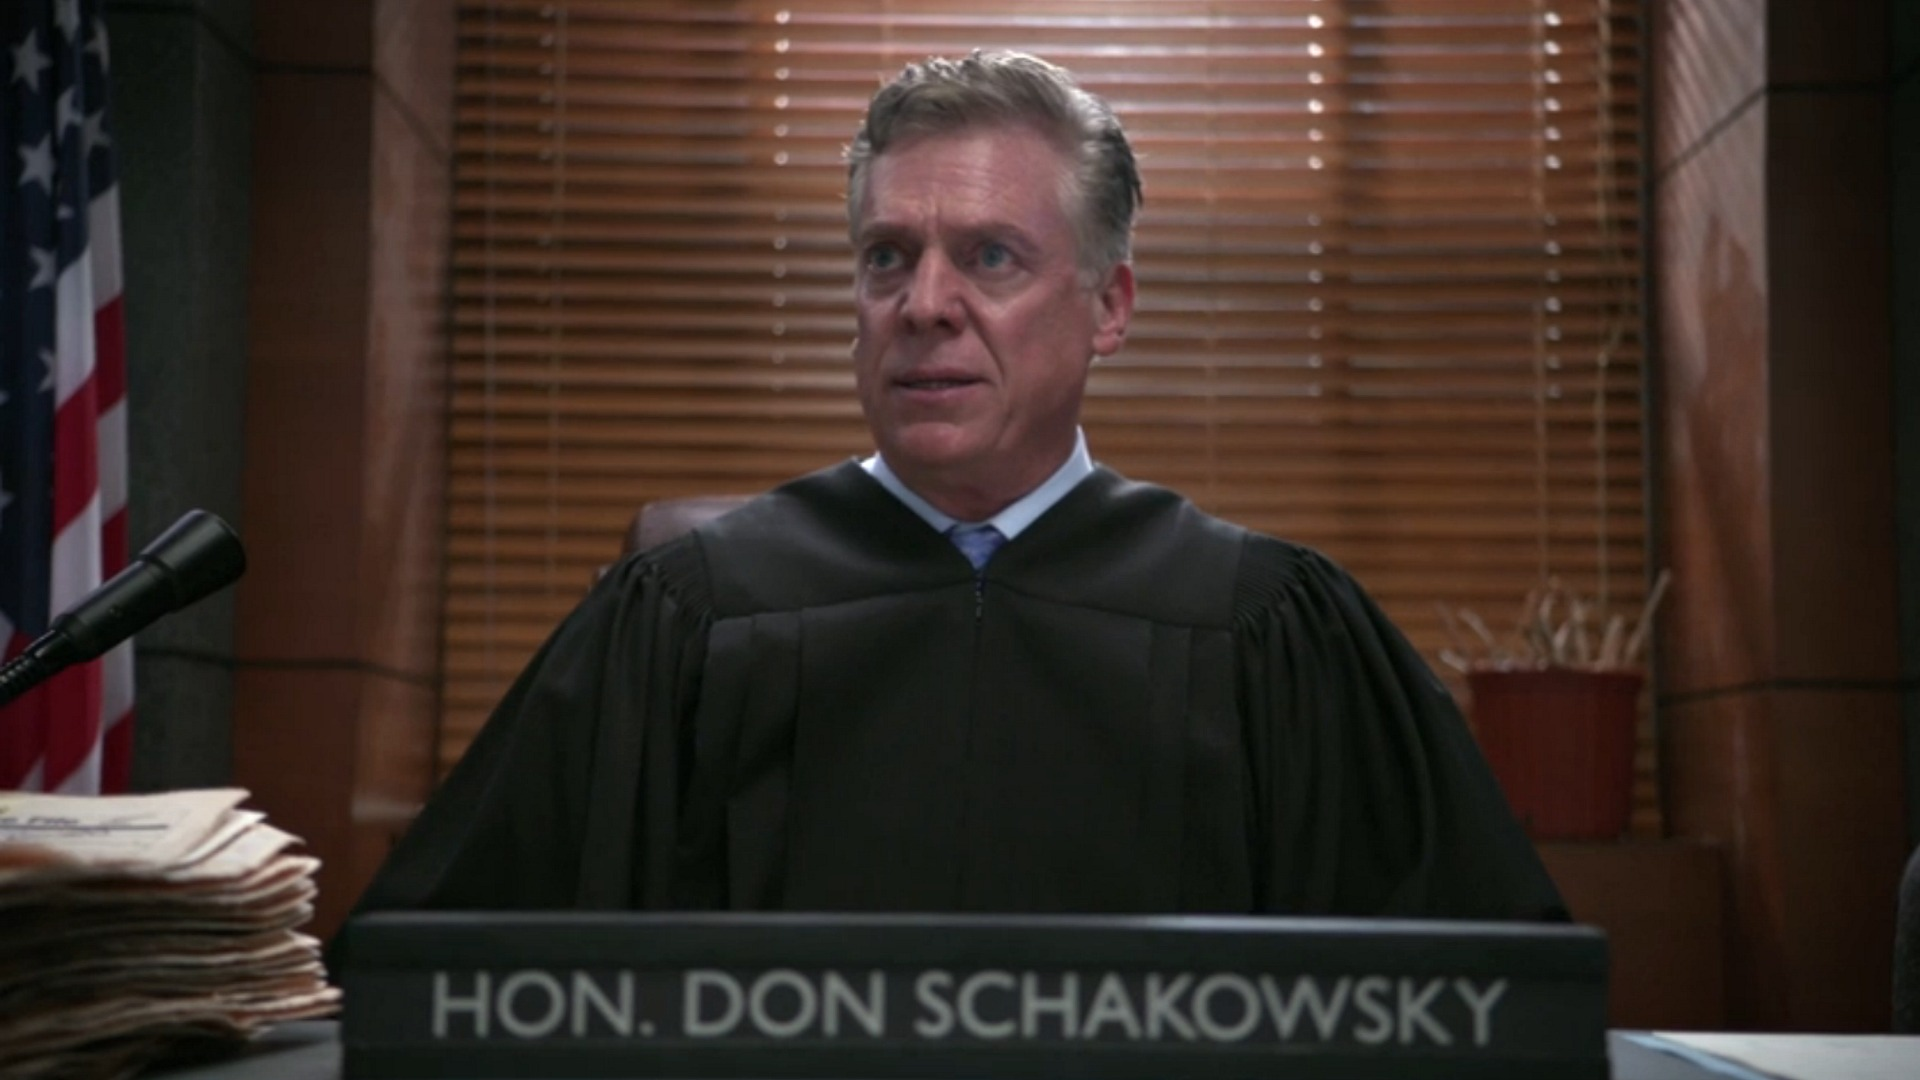 Judge Don Schakowsky (Christopher McDonald)